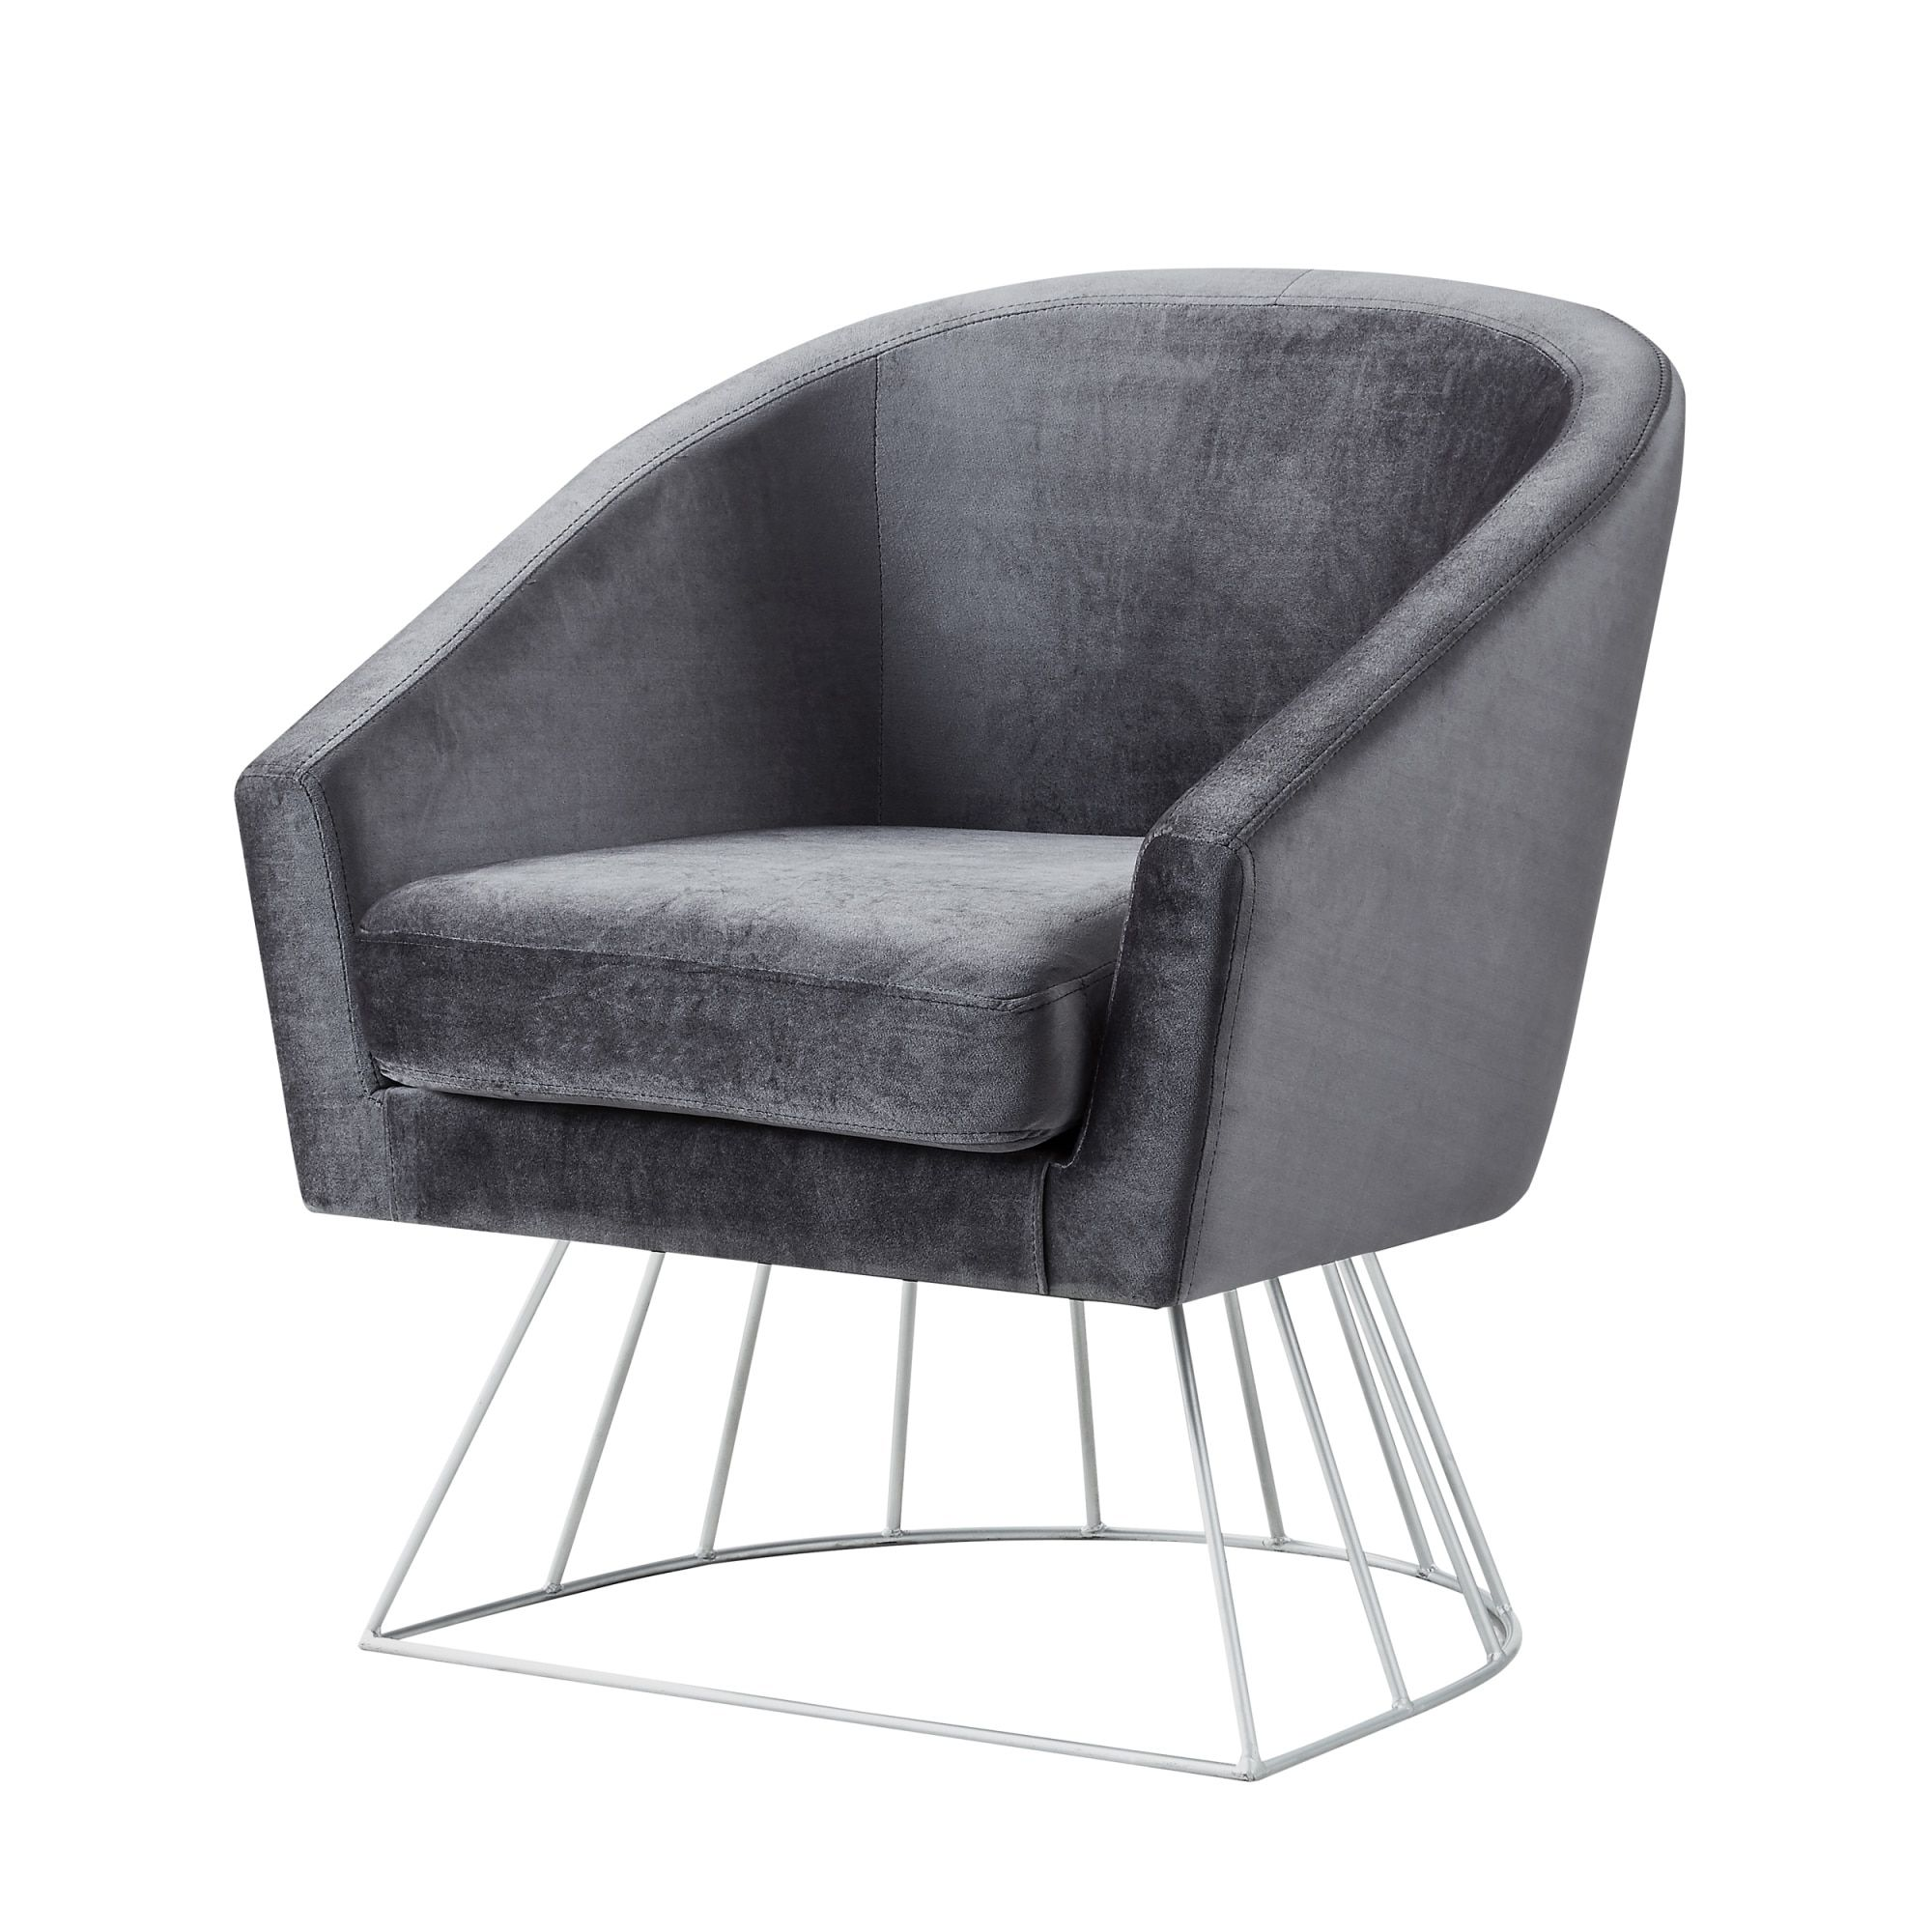 Admirable Inspired Home Sabrina Velvet Accent Chair With Metal Base Andrewgaddart Wooden Chair Designs For Living Room Andrewgaddartcom